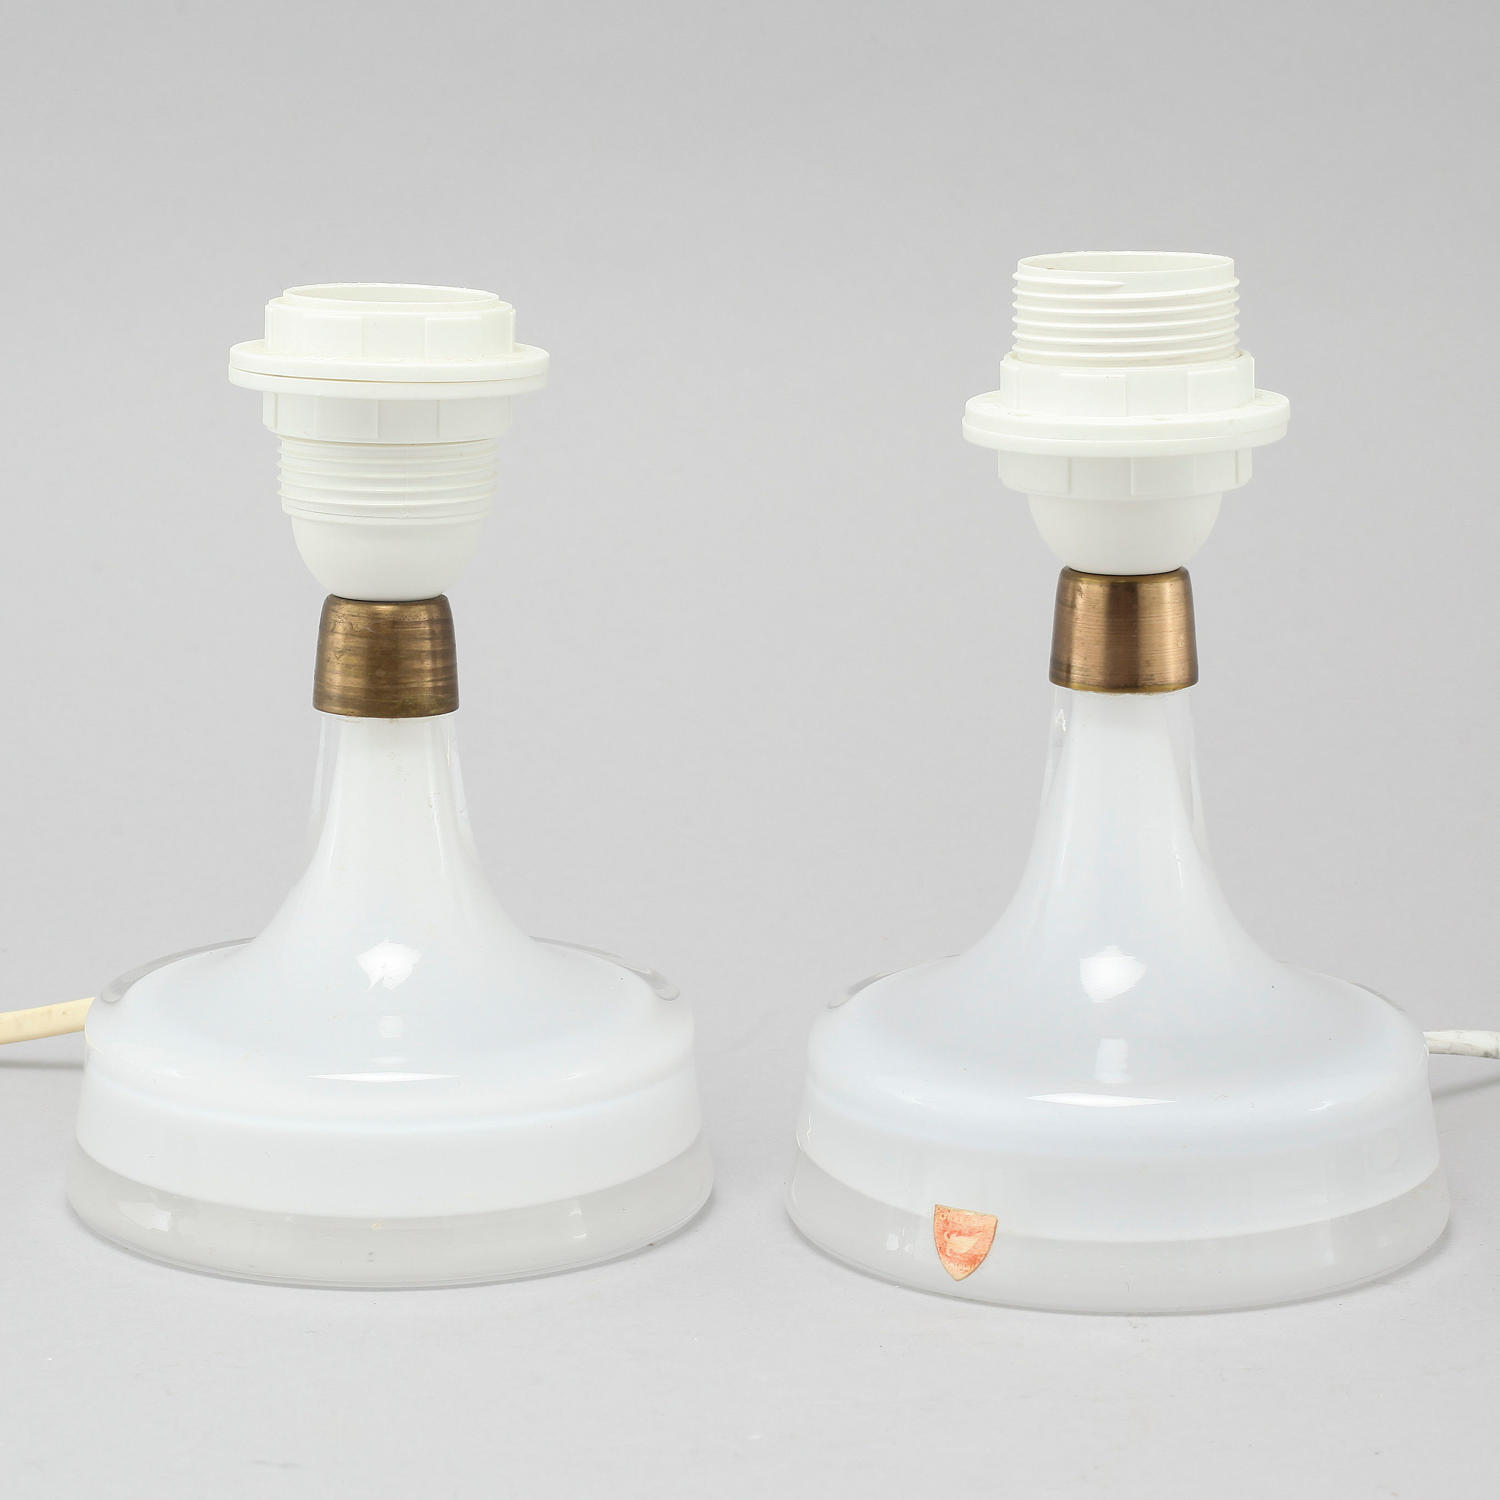 A pair of small Orrefors glass table lamps